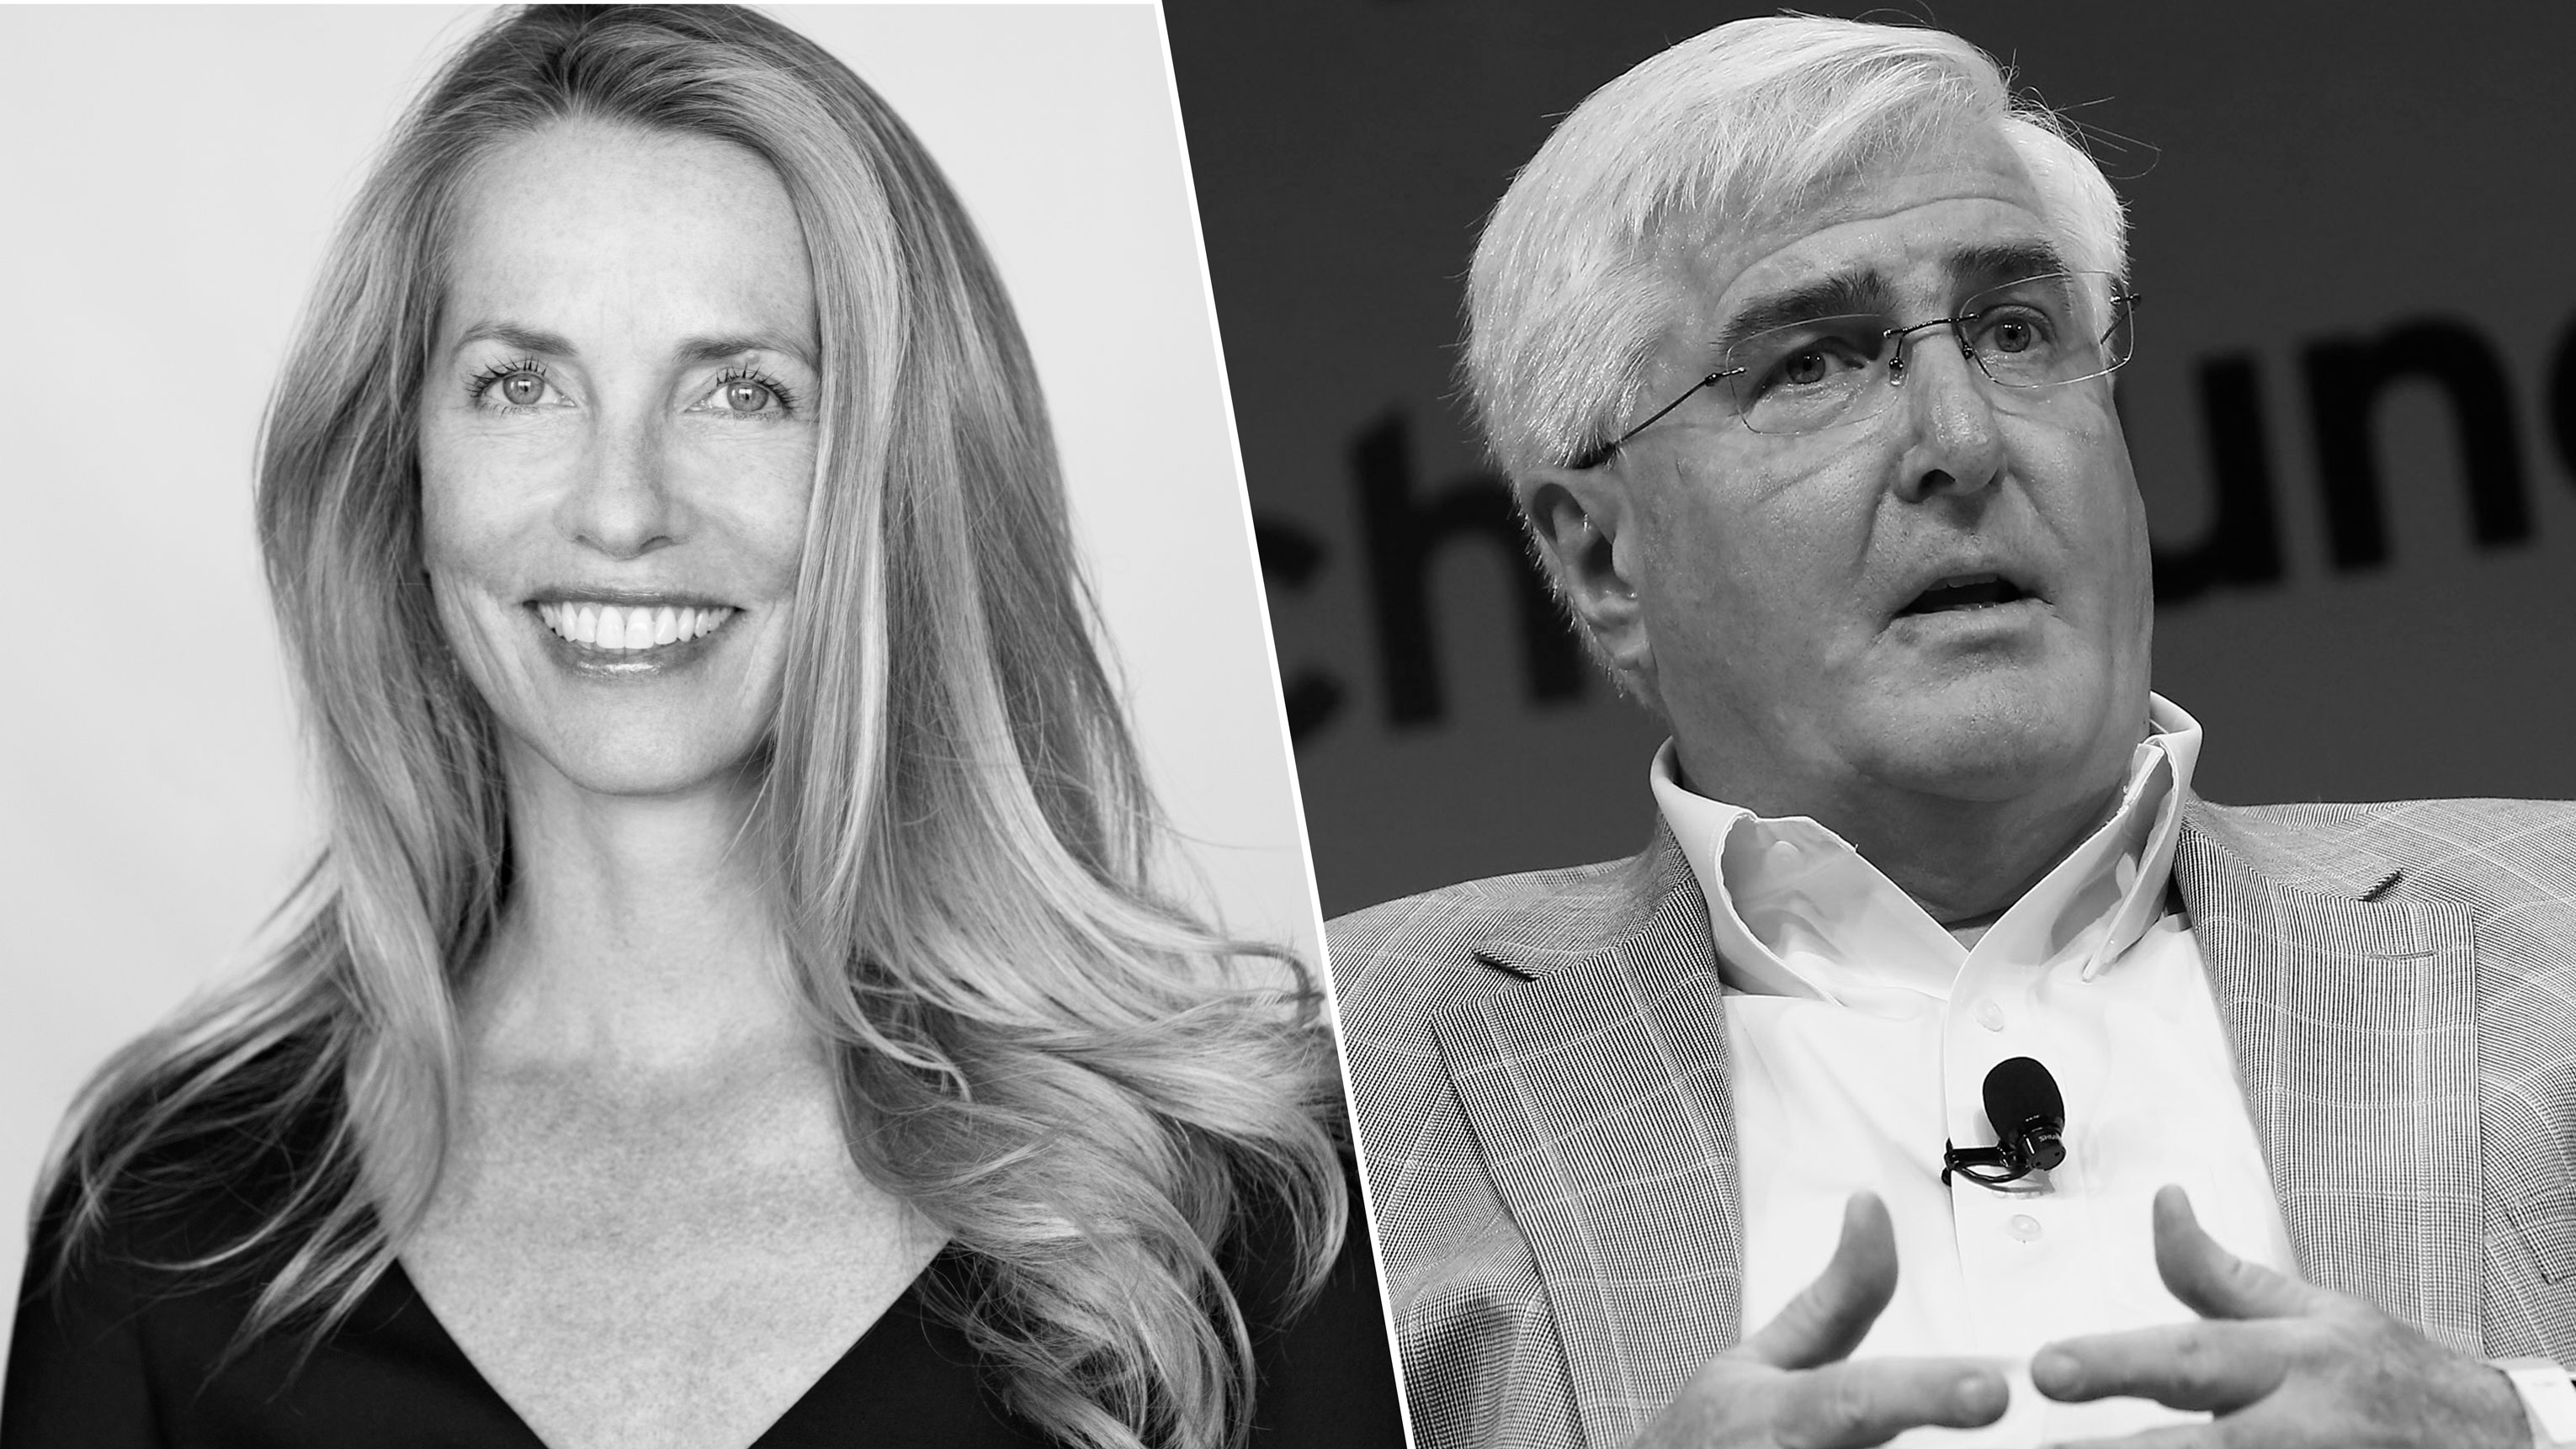 Laurene Powell Jobs and Ron Conway will talk about investing in America's youth at Disrupt SF